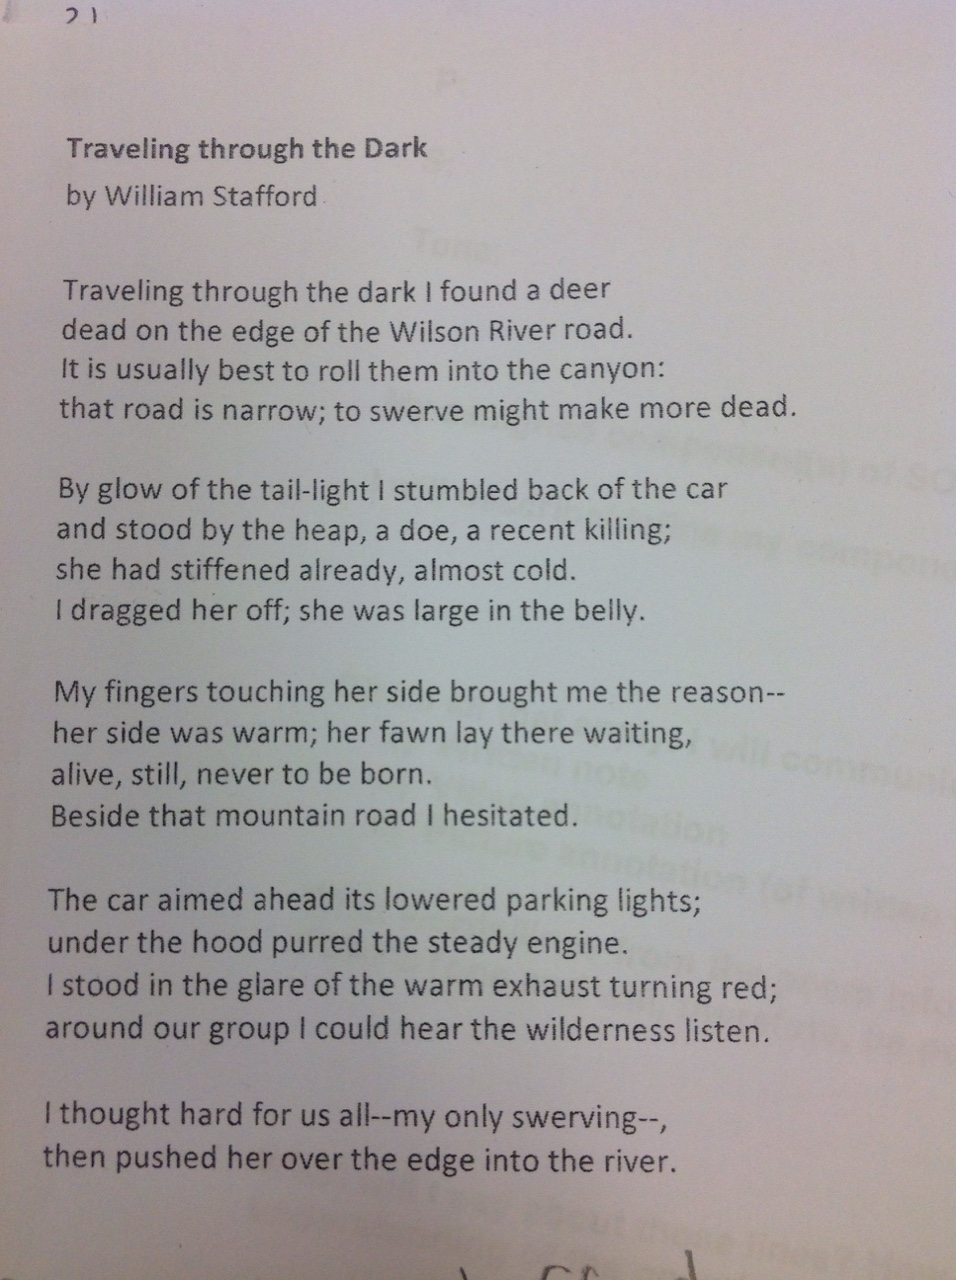 travelling through the dark essay In william stafford's traveling through the dark, he writes about finding a pregnant doe that had been hit by a car on the side of the road.